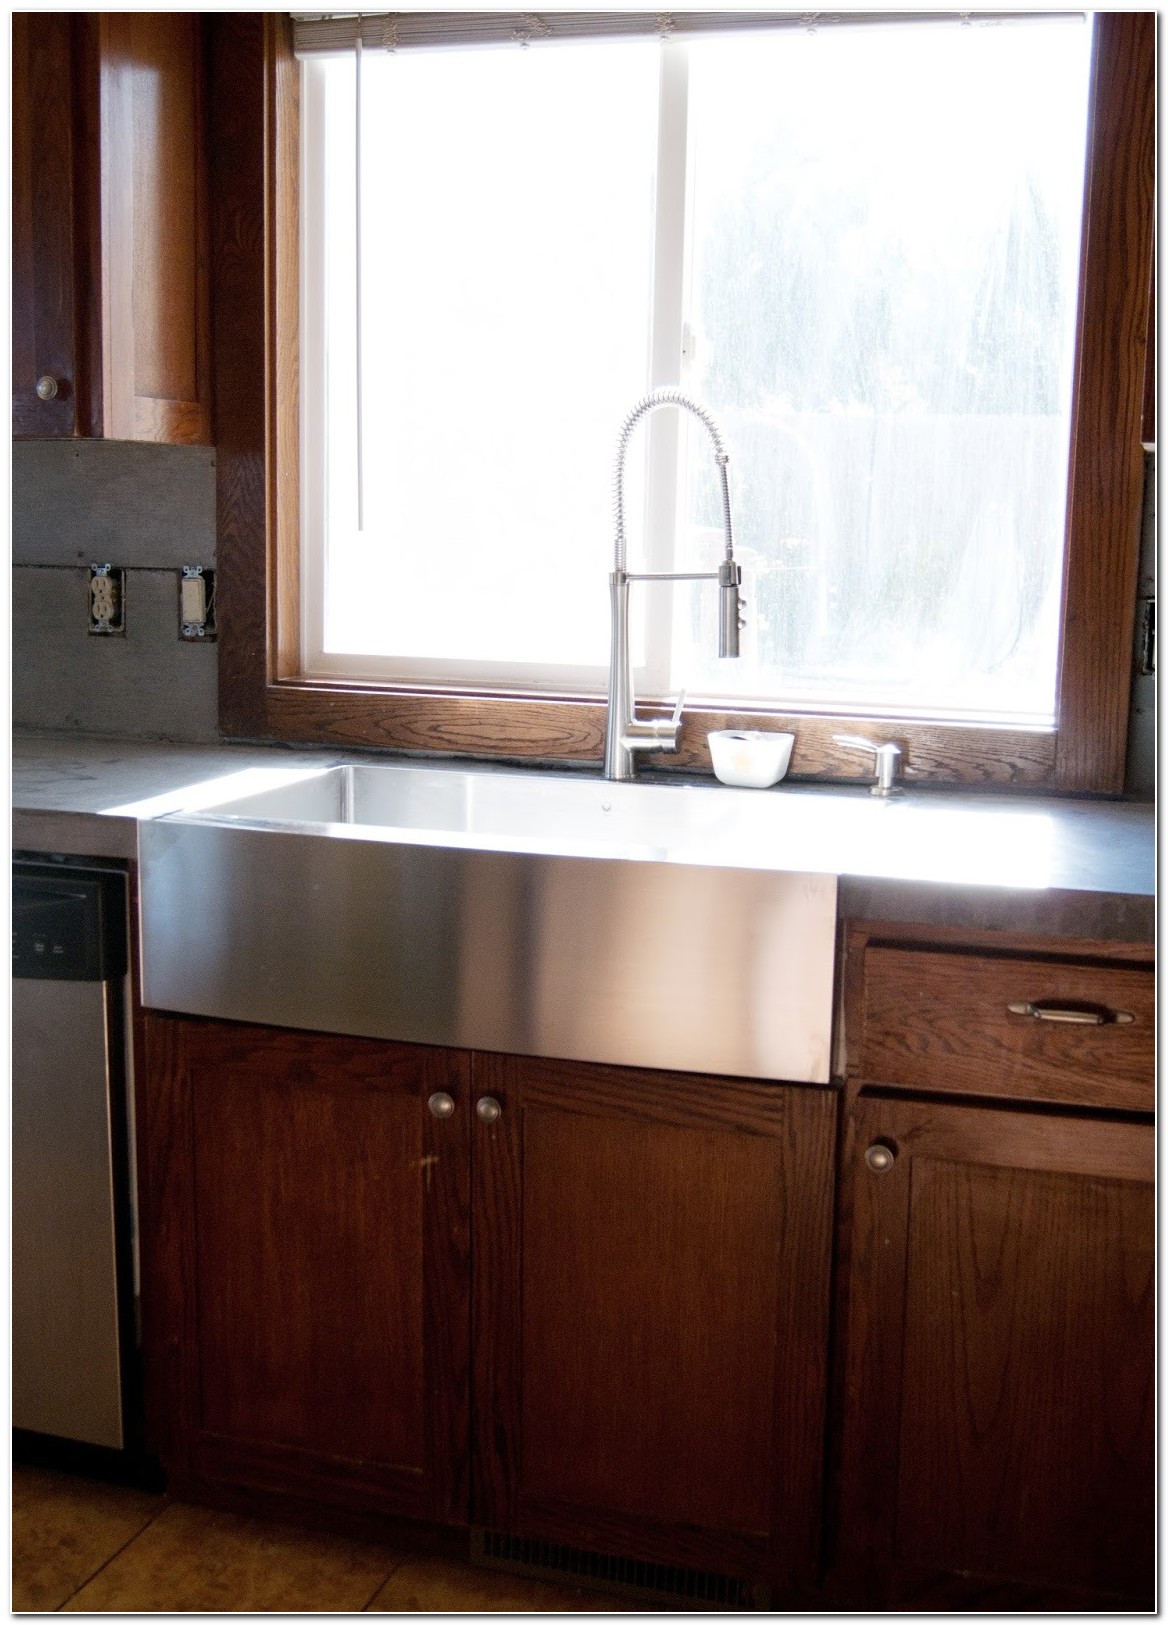 Installing Stainless Steel Apron Front Sink